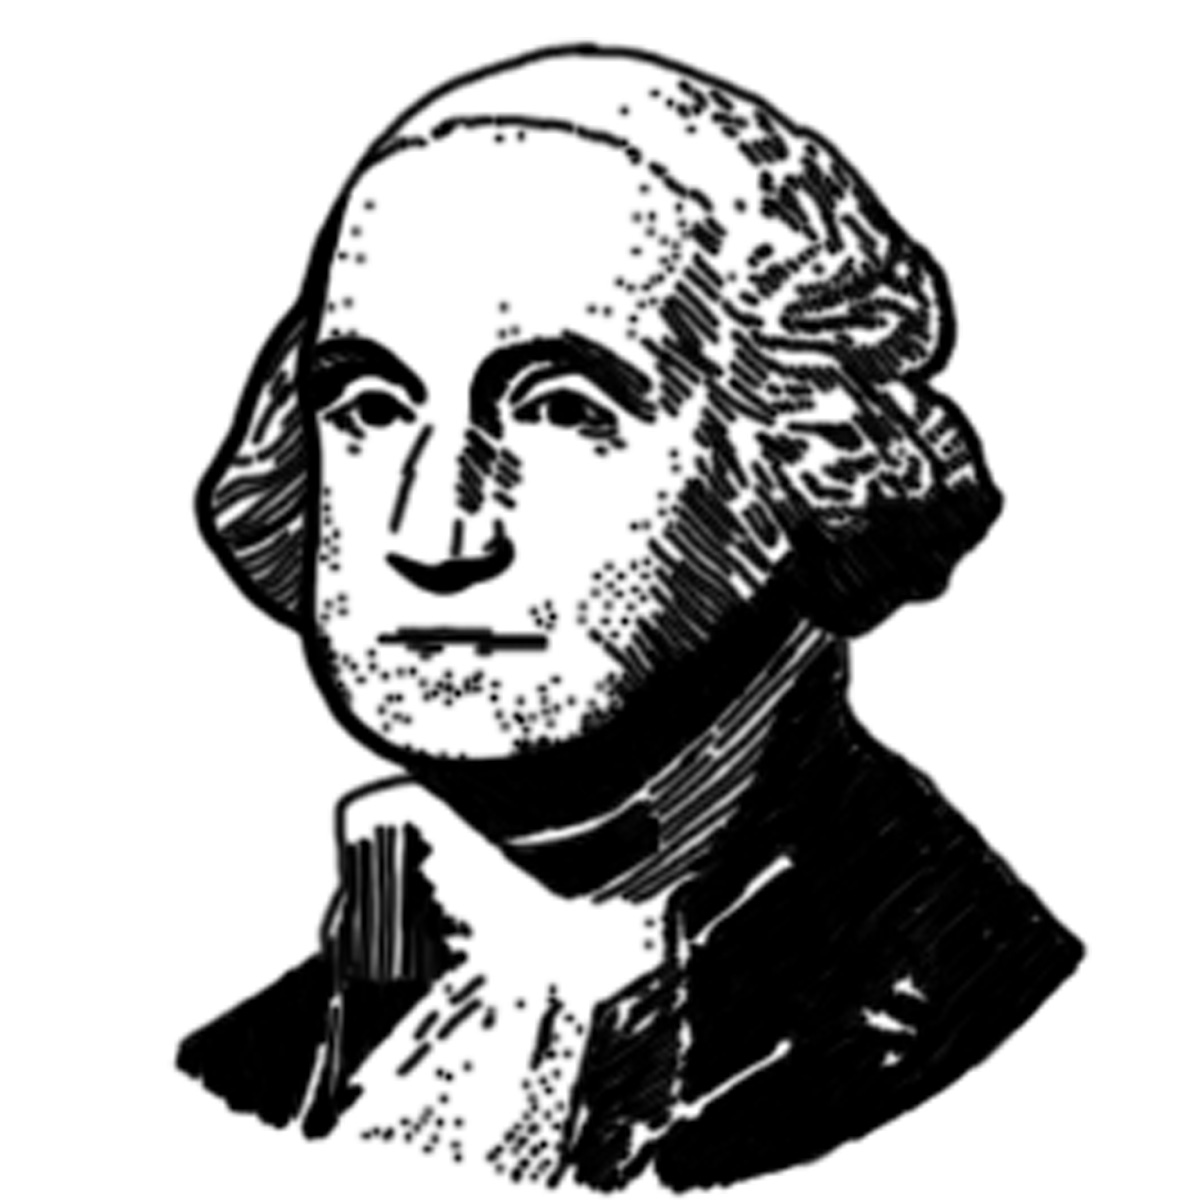 George Washington Portrait Clip Art In Black And White  Realistic